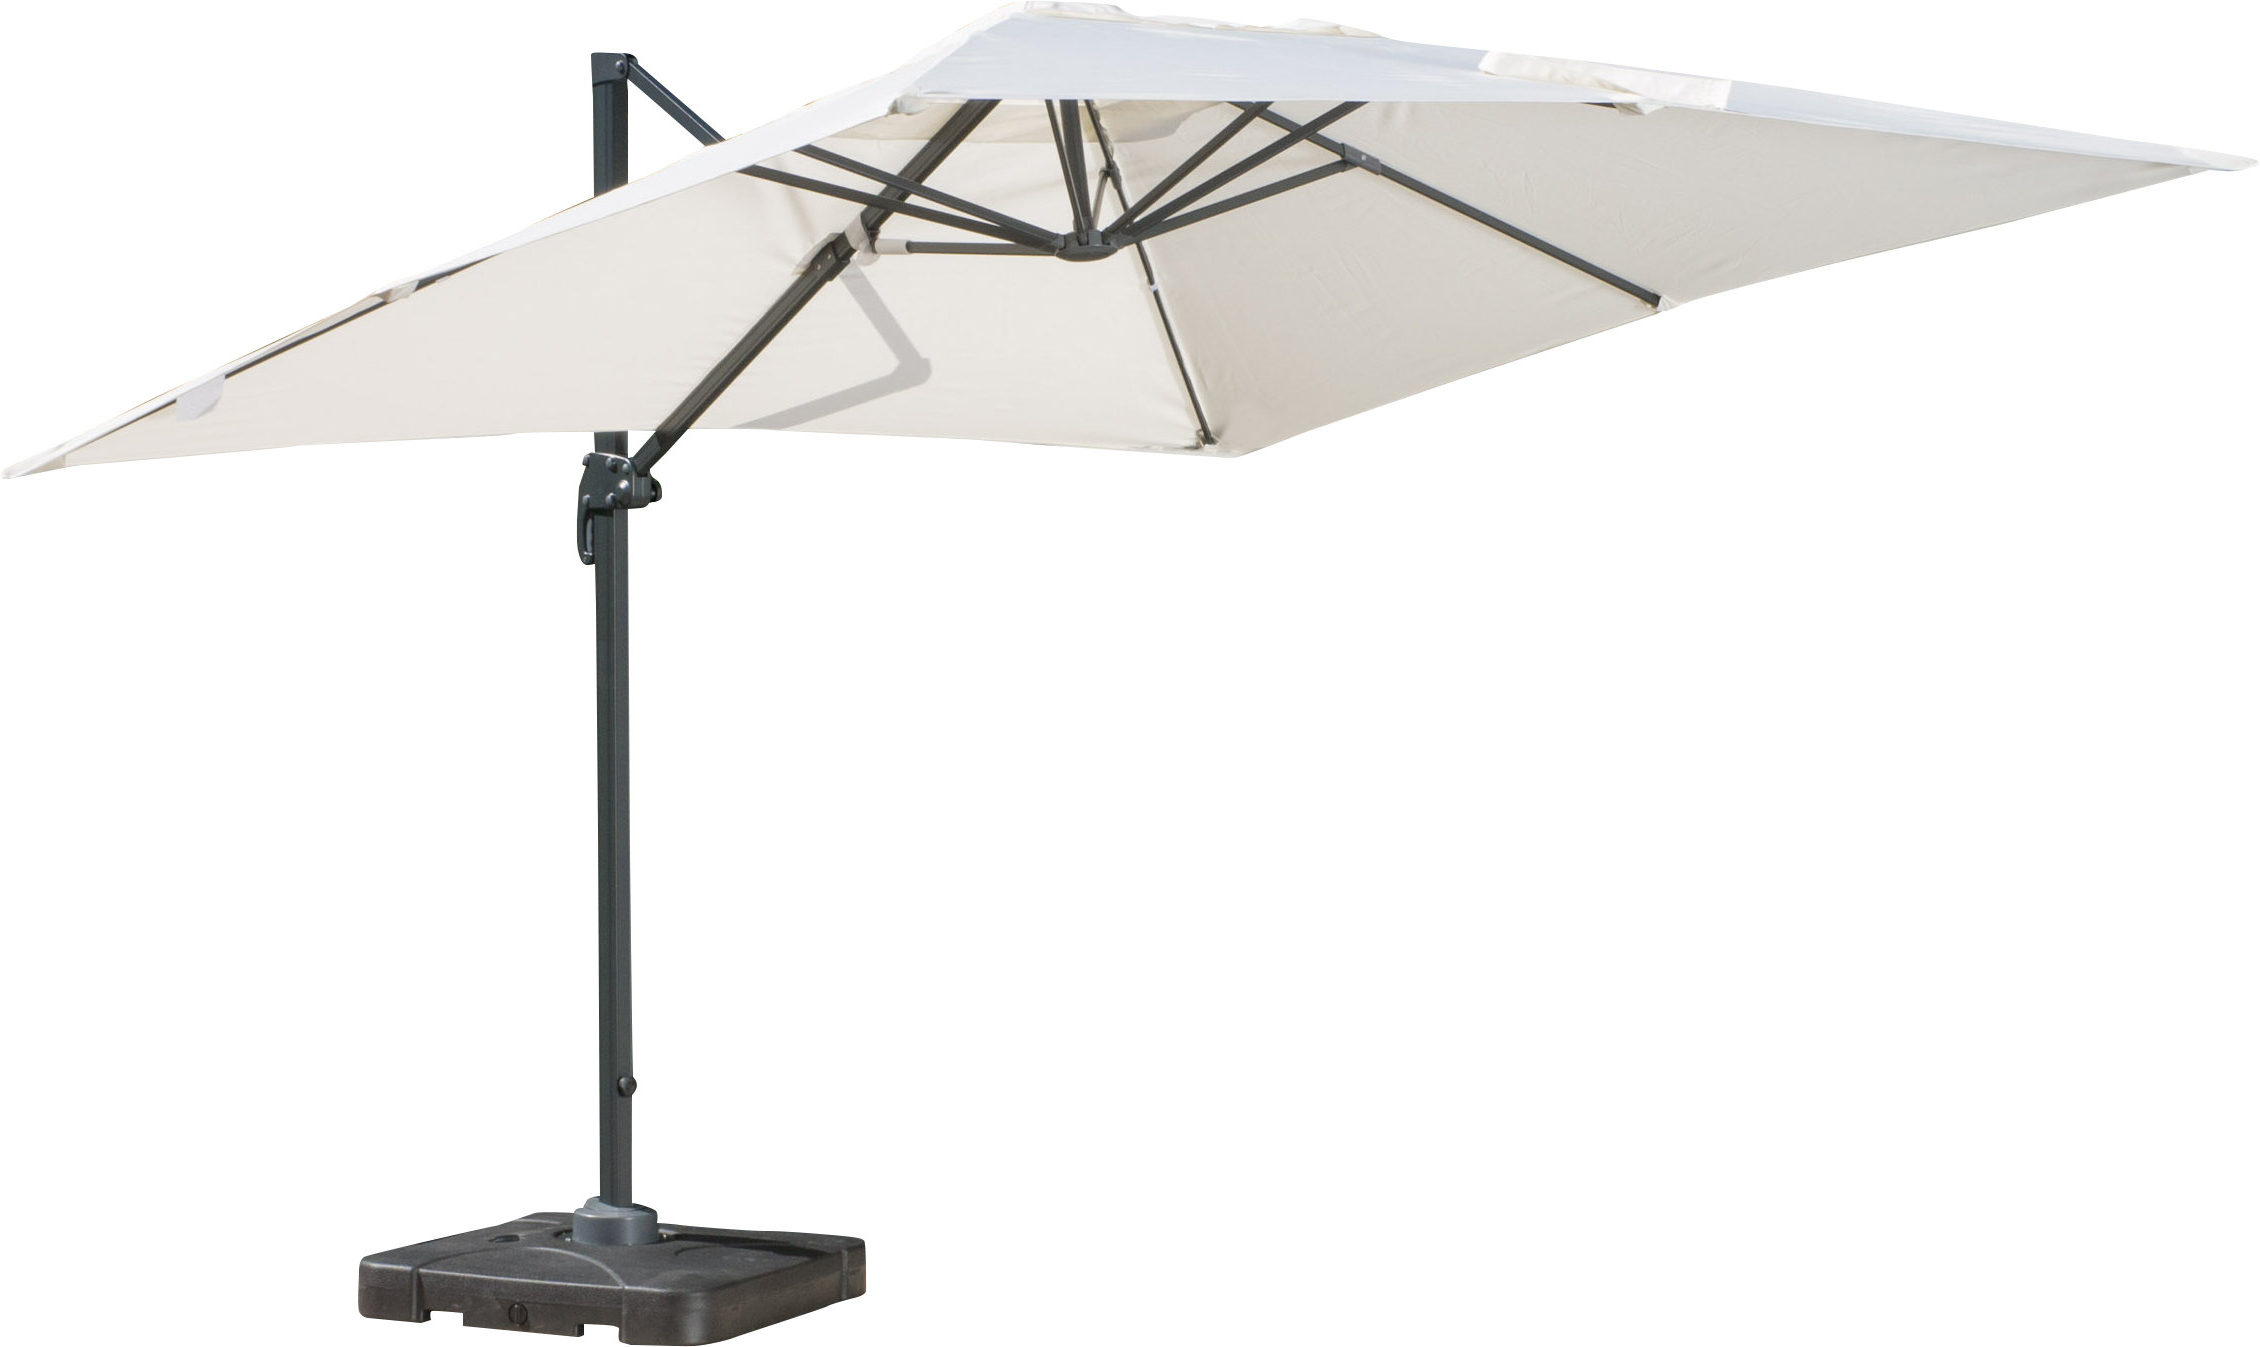 Well Known Boracay 10' Square Cantilever Umbrella Pertaining To Boracay Square Cantilever Umbrellas (View 2 of 20)